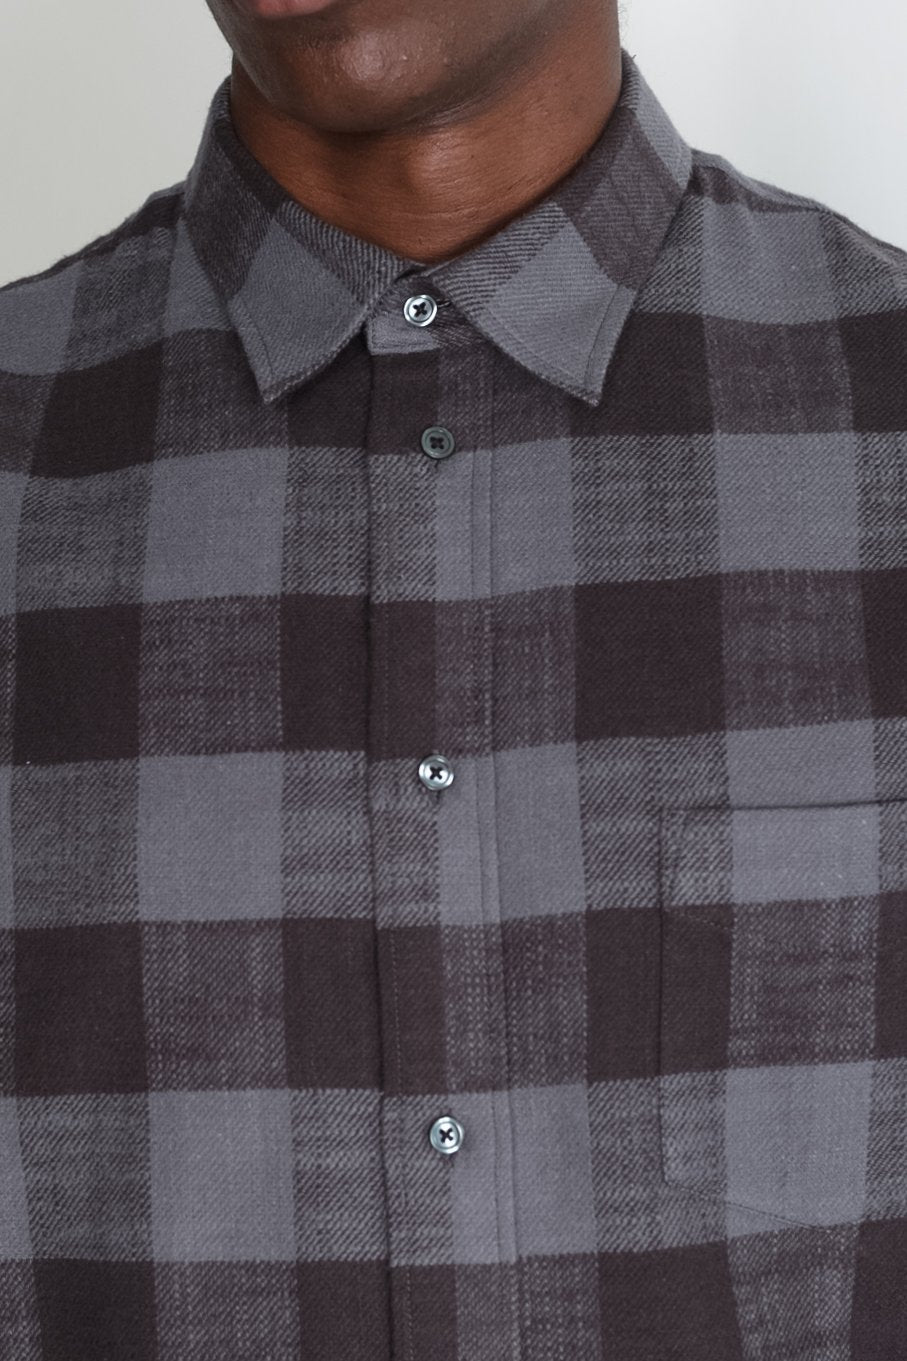 Japanese Buffalo Plaid in Grey and Black 01